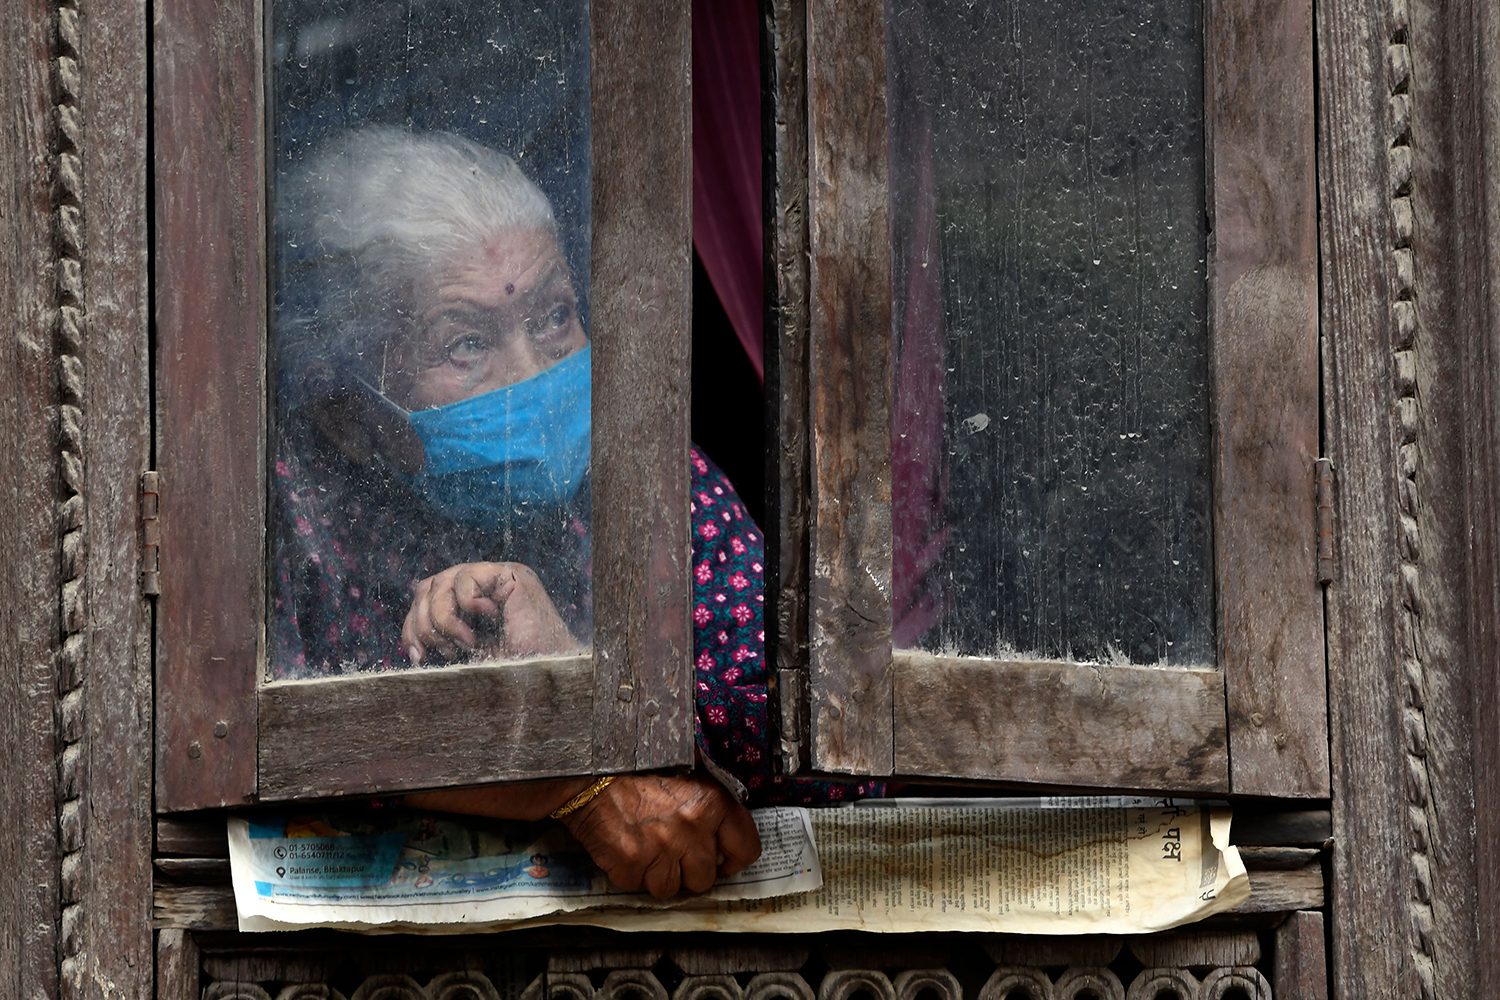 From her window, a devotee watches the Rato Machindranath Jatra Chariot festival in Lalitpur, Nepal, on Sept. 6. The centuries-old procession was supposed to begin at the end of April but was delayed when a nationwide coronavirus lockdown was imposed March 24. Although restrictions were eased in July, curbs were imposed again Aug. 20 as coronavirus cases surged. Only essential services are allowed on the streets. PRAKASH MATHEMA/AFP via Getty Images